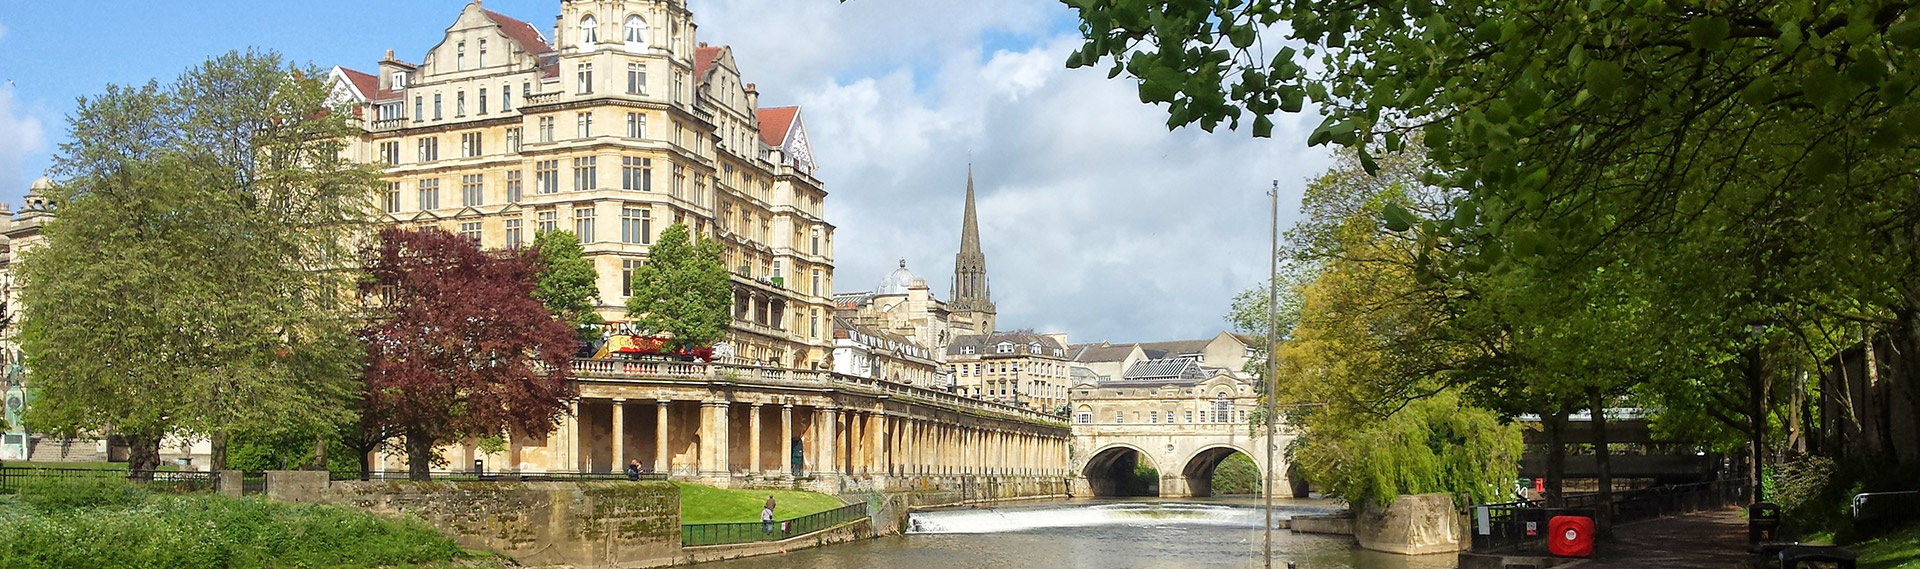 View of Pulteney Bridge in Bath